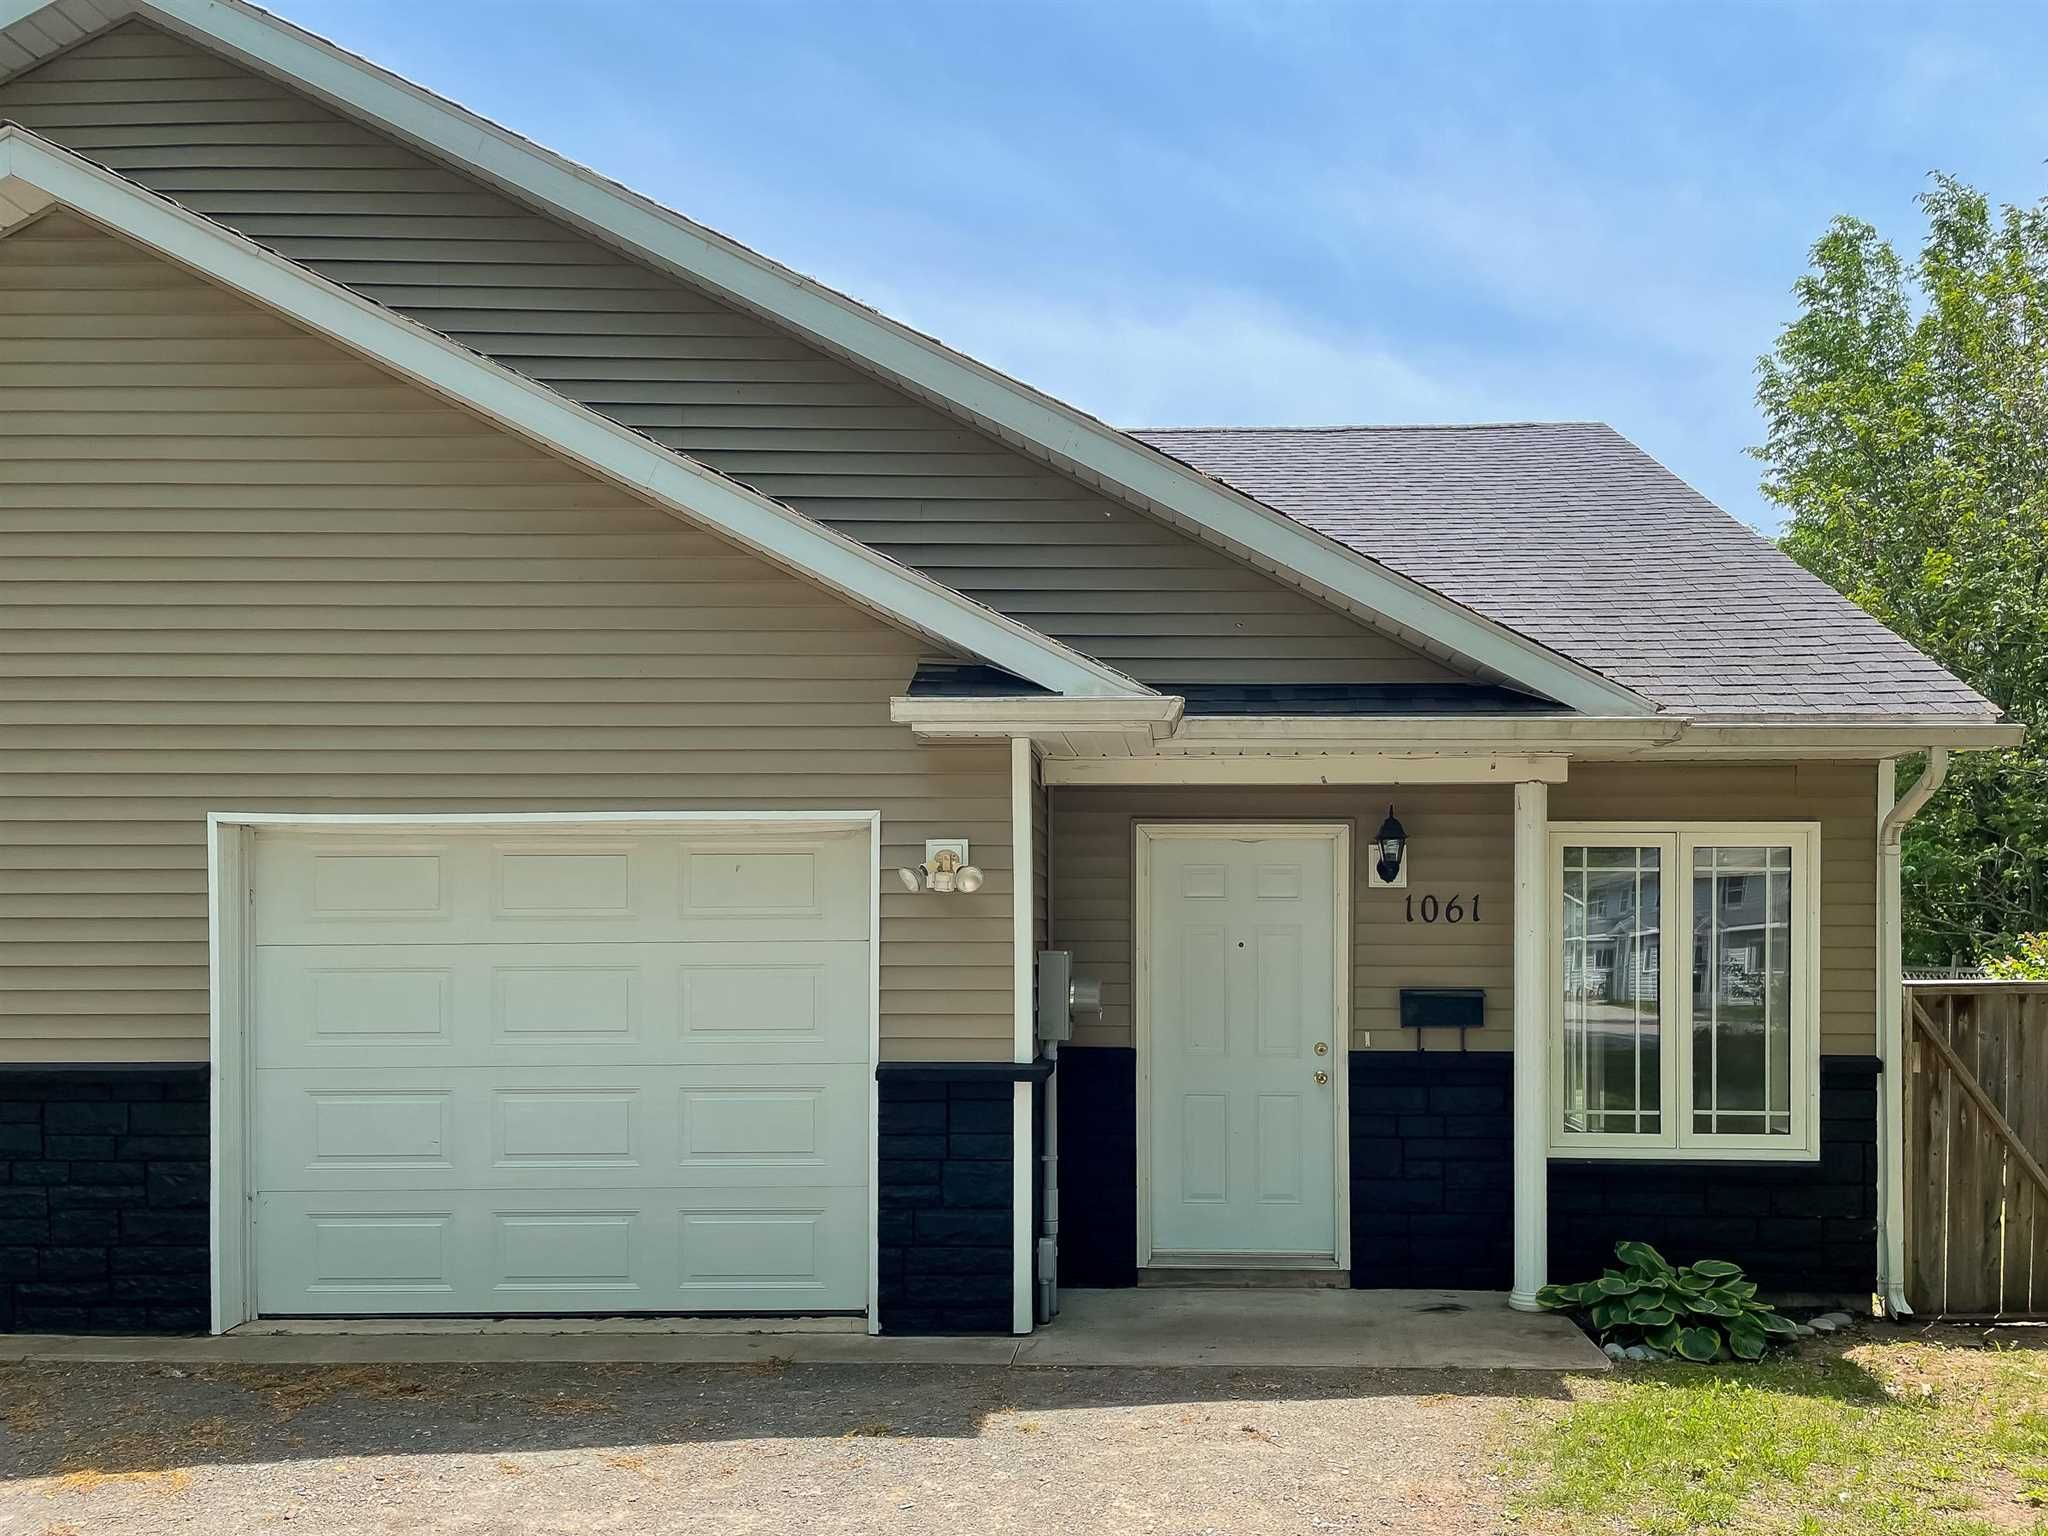 Main Photo: 1061 Scott Drive in North Kentville: 404-Kings County Residential for sale (Annapolis Valley)  : MLS®# 202114706